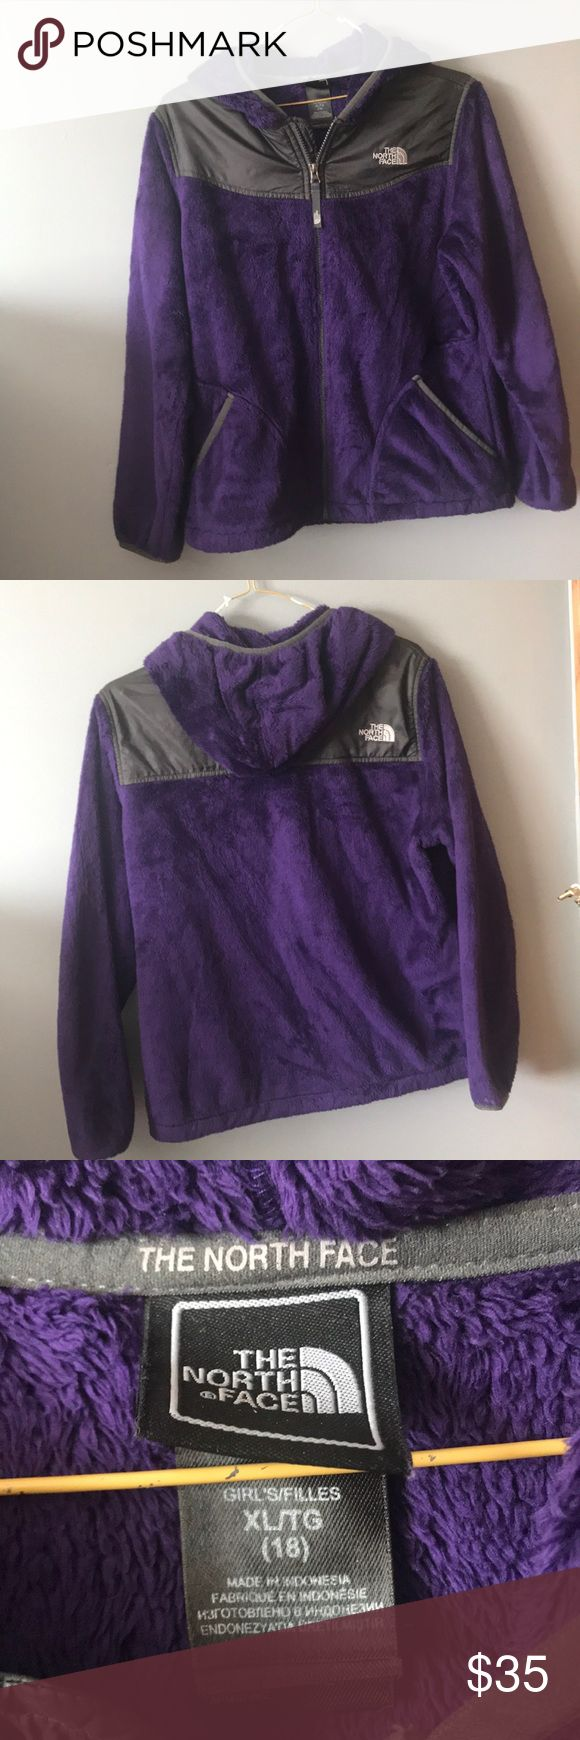 GIRLS fuzzy purple northface! Fuzzy purple north face! No stains/tears/issues at all, just a little worn from general wear. Great fall/spring jacket! KIDS (GIRL) XL! The North Face Jackets & Coats